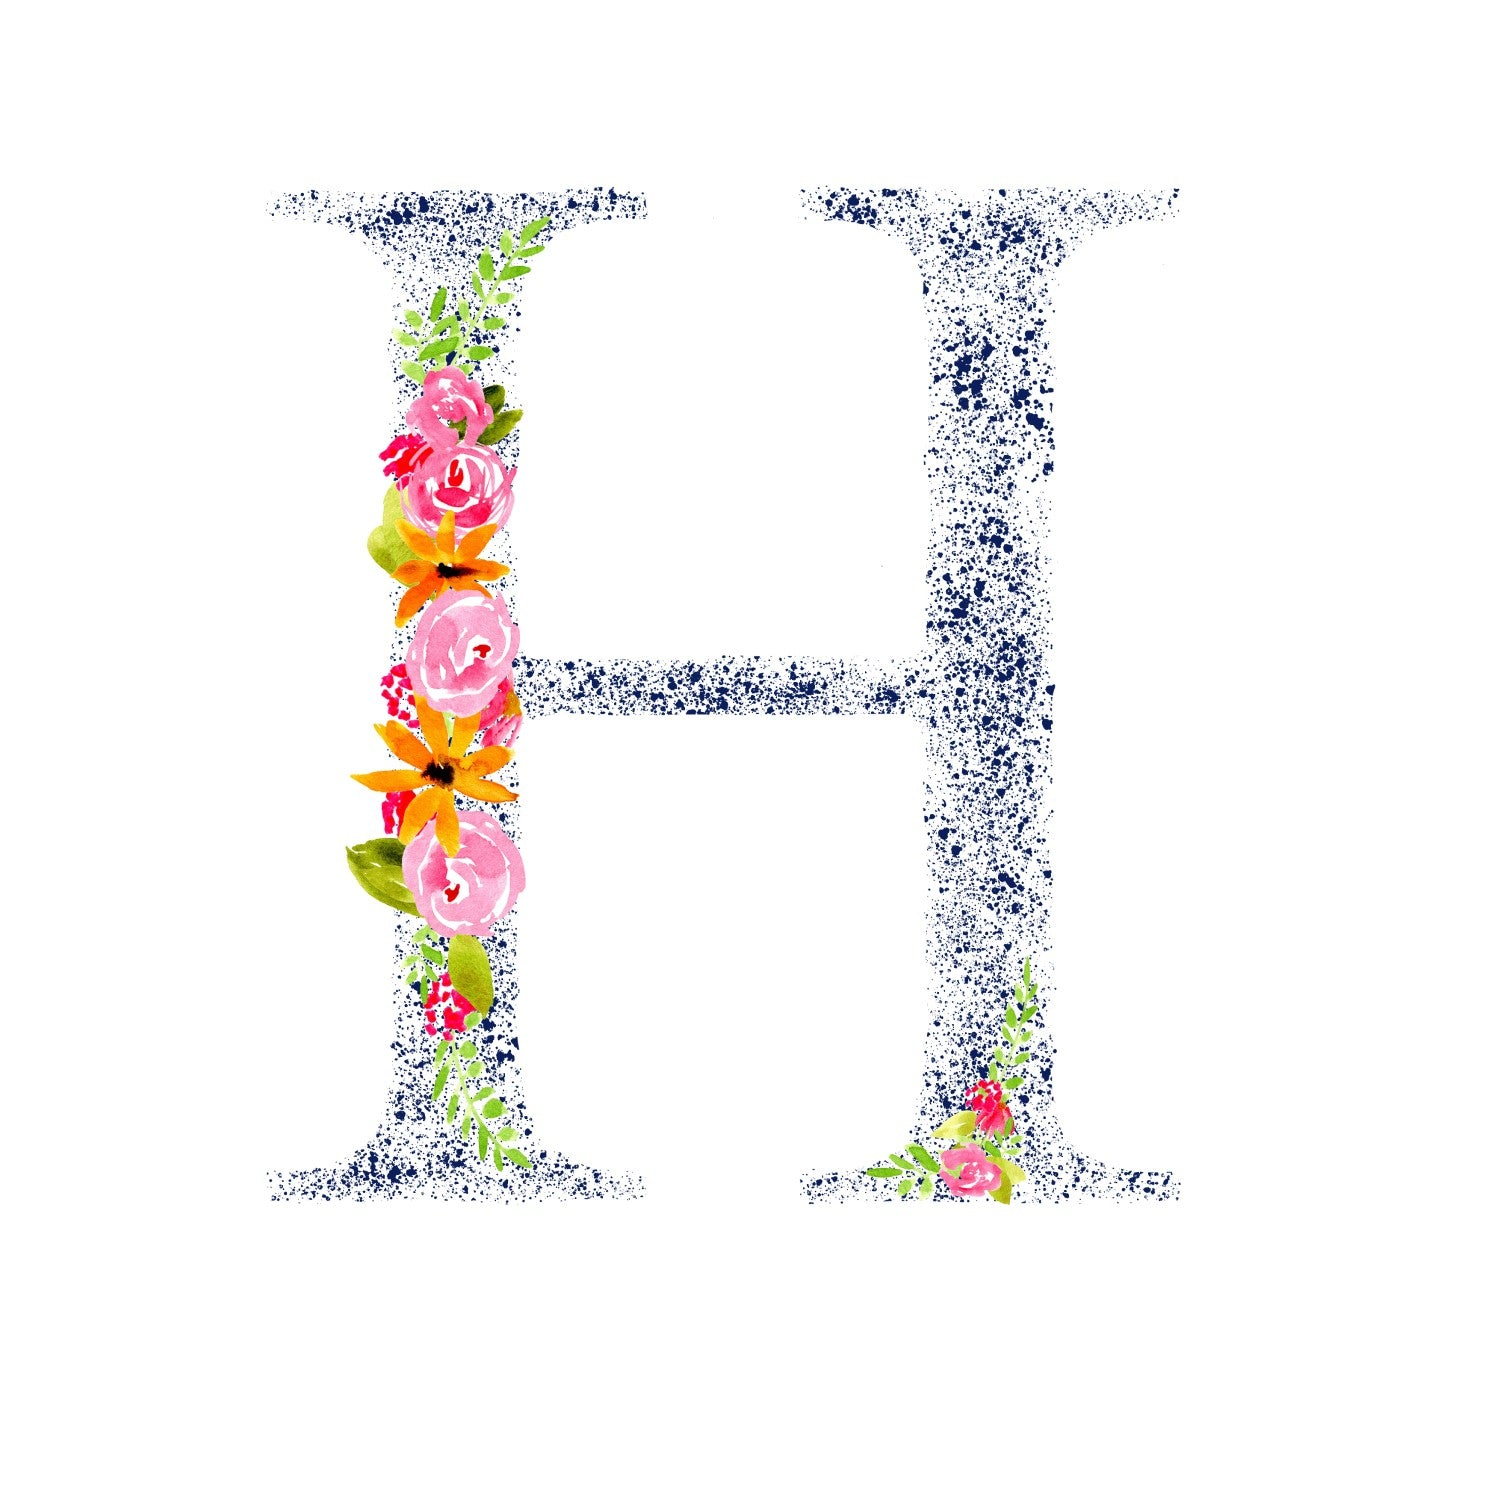 Whose name begins with the letter H